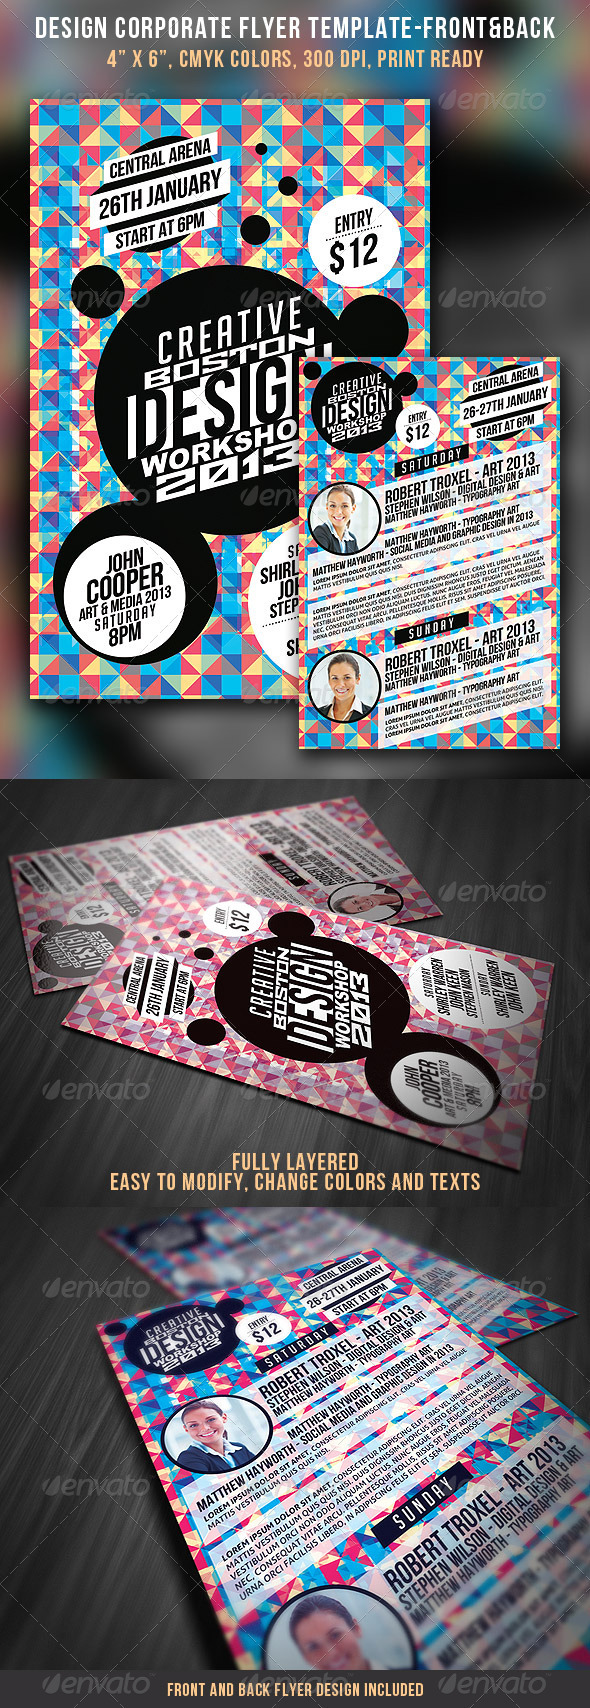 Design Corporate Flyer - Front & Back - Commerce Flyers